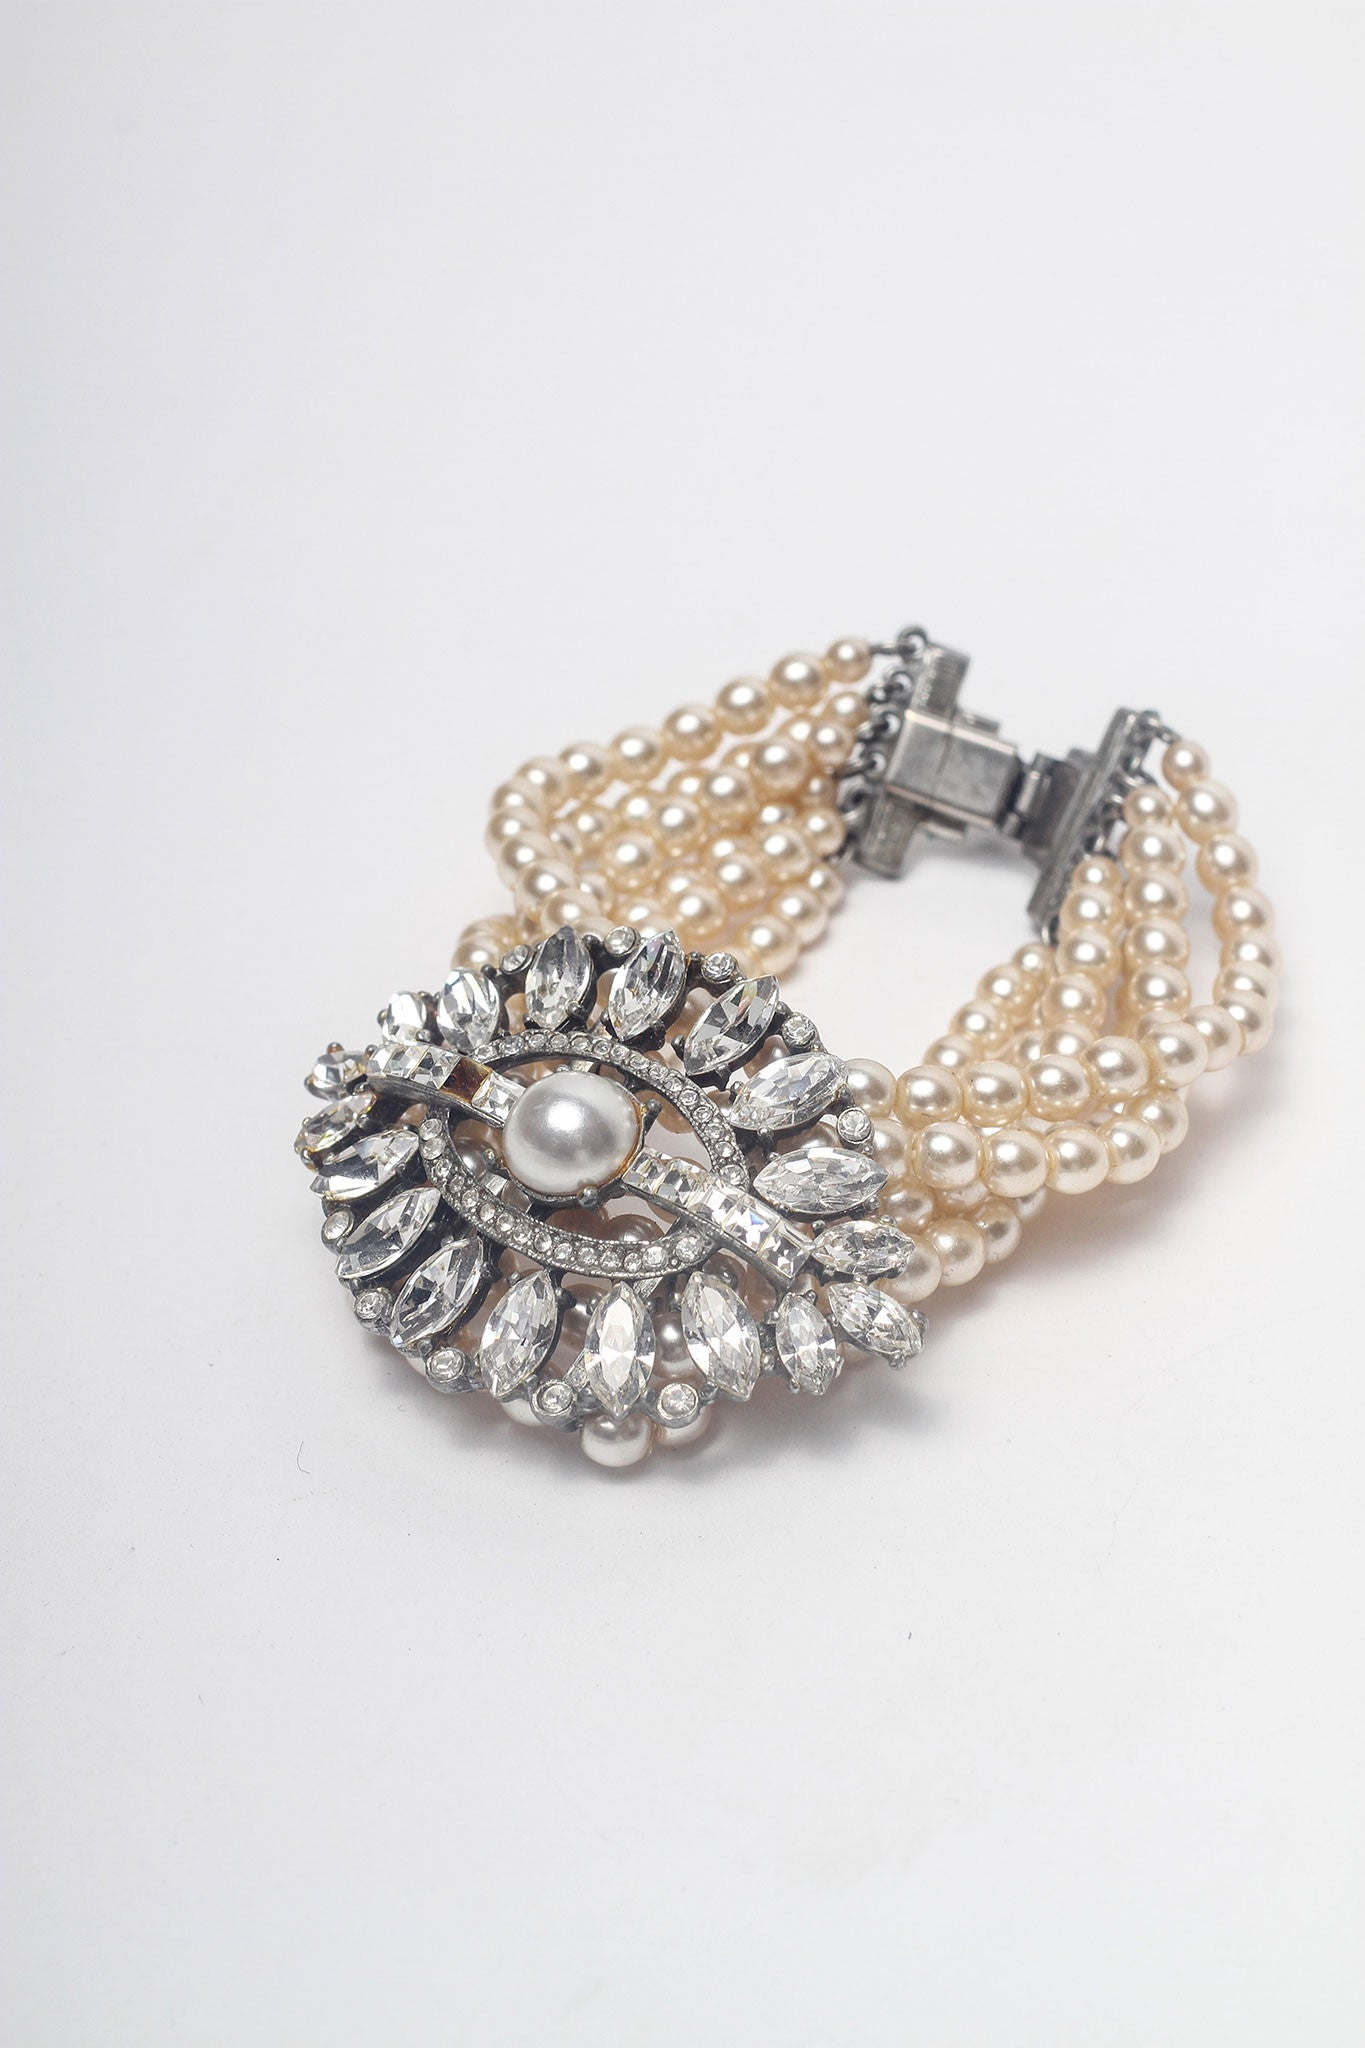 Pearl and Diamante Bracelet